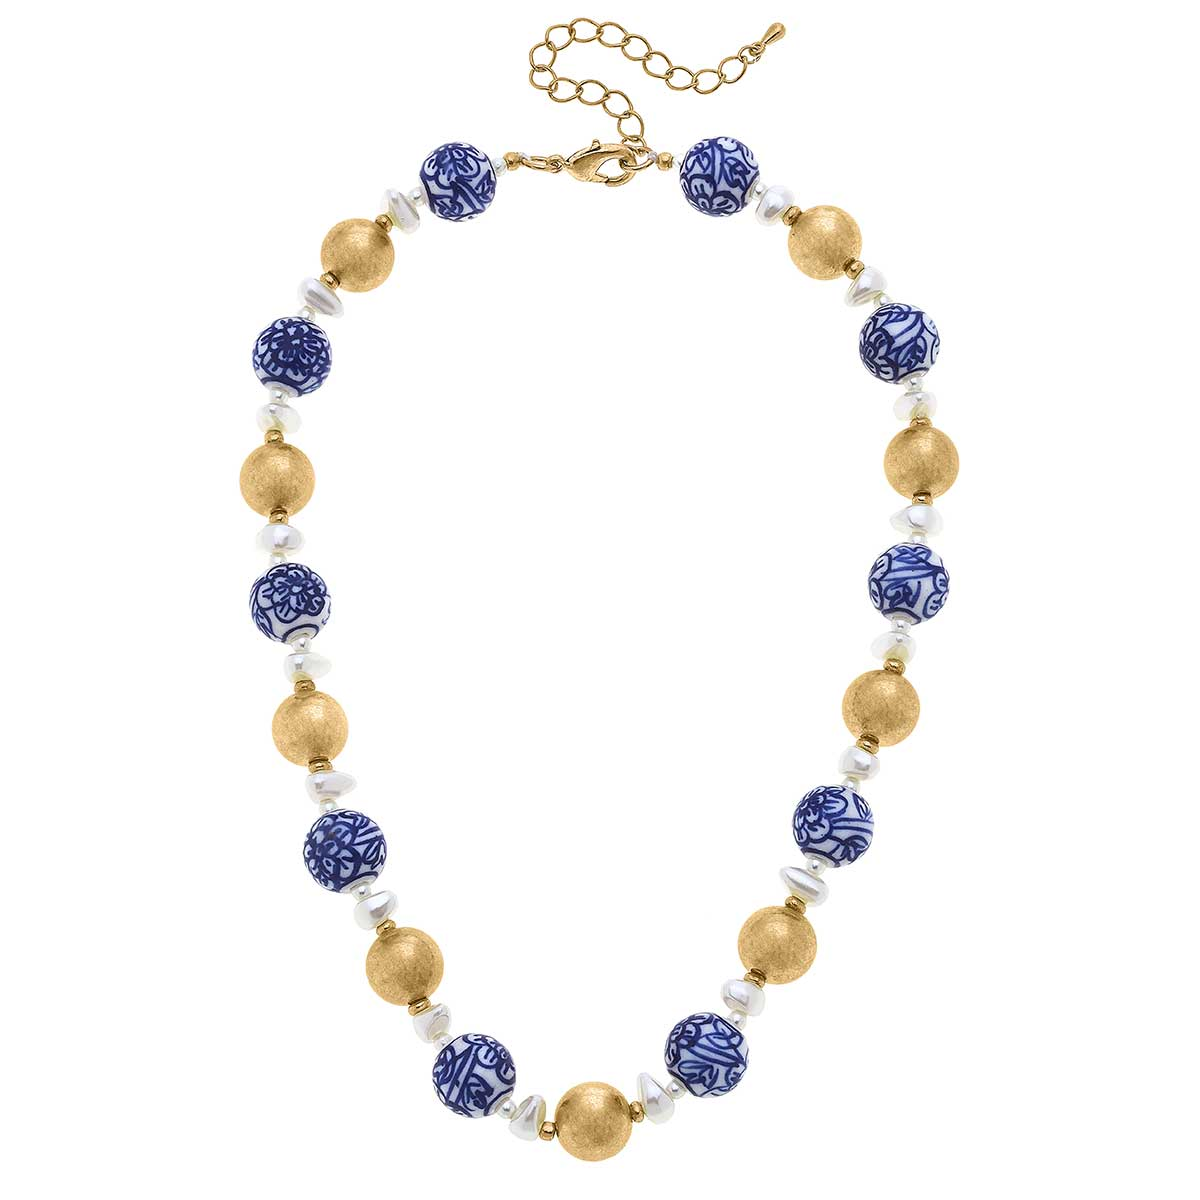 Paloma Chinoiserie & Ball Bead Necklace in Blue & White